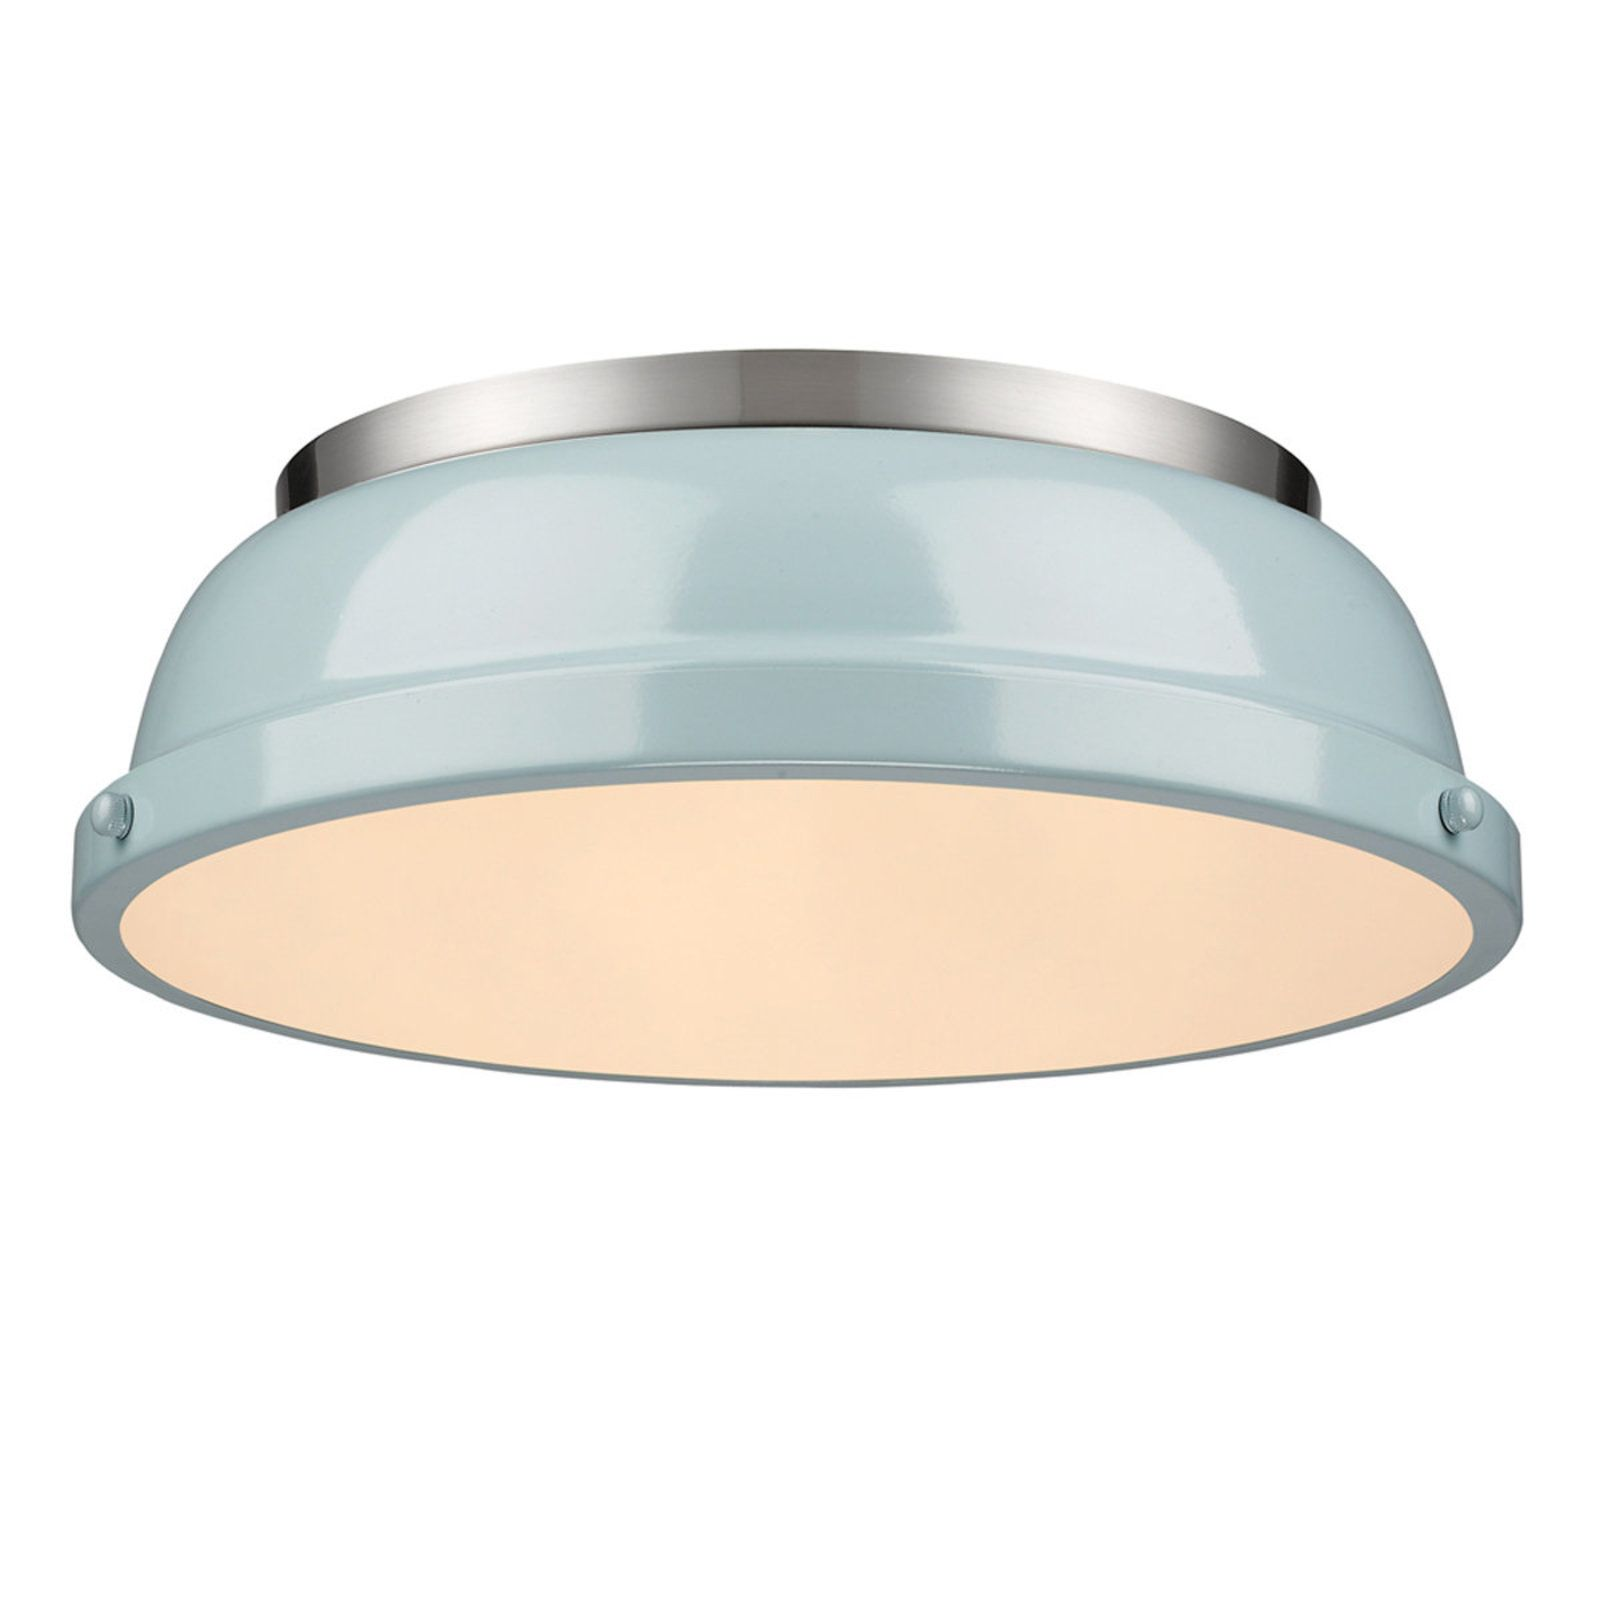 Classic Dome Enameled Ceiling Light - Shades of Light 14\